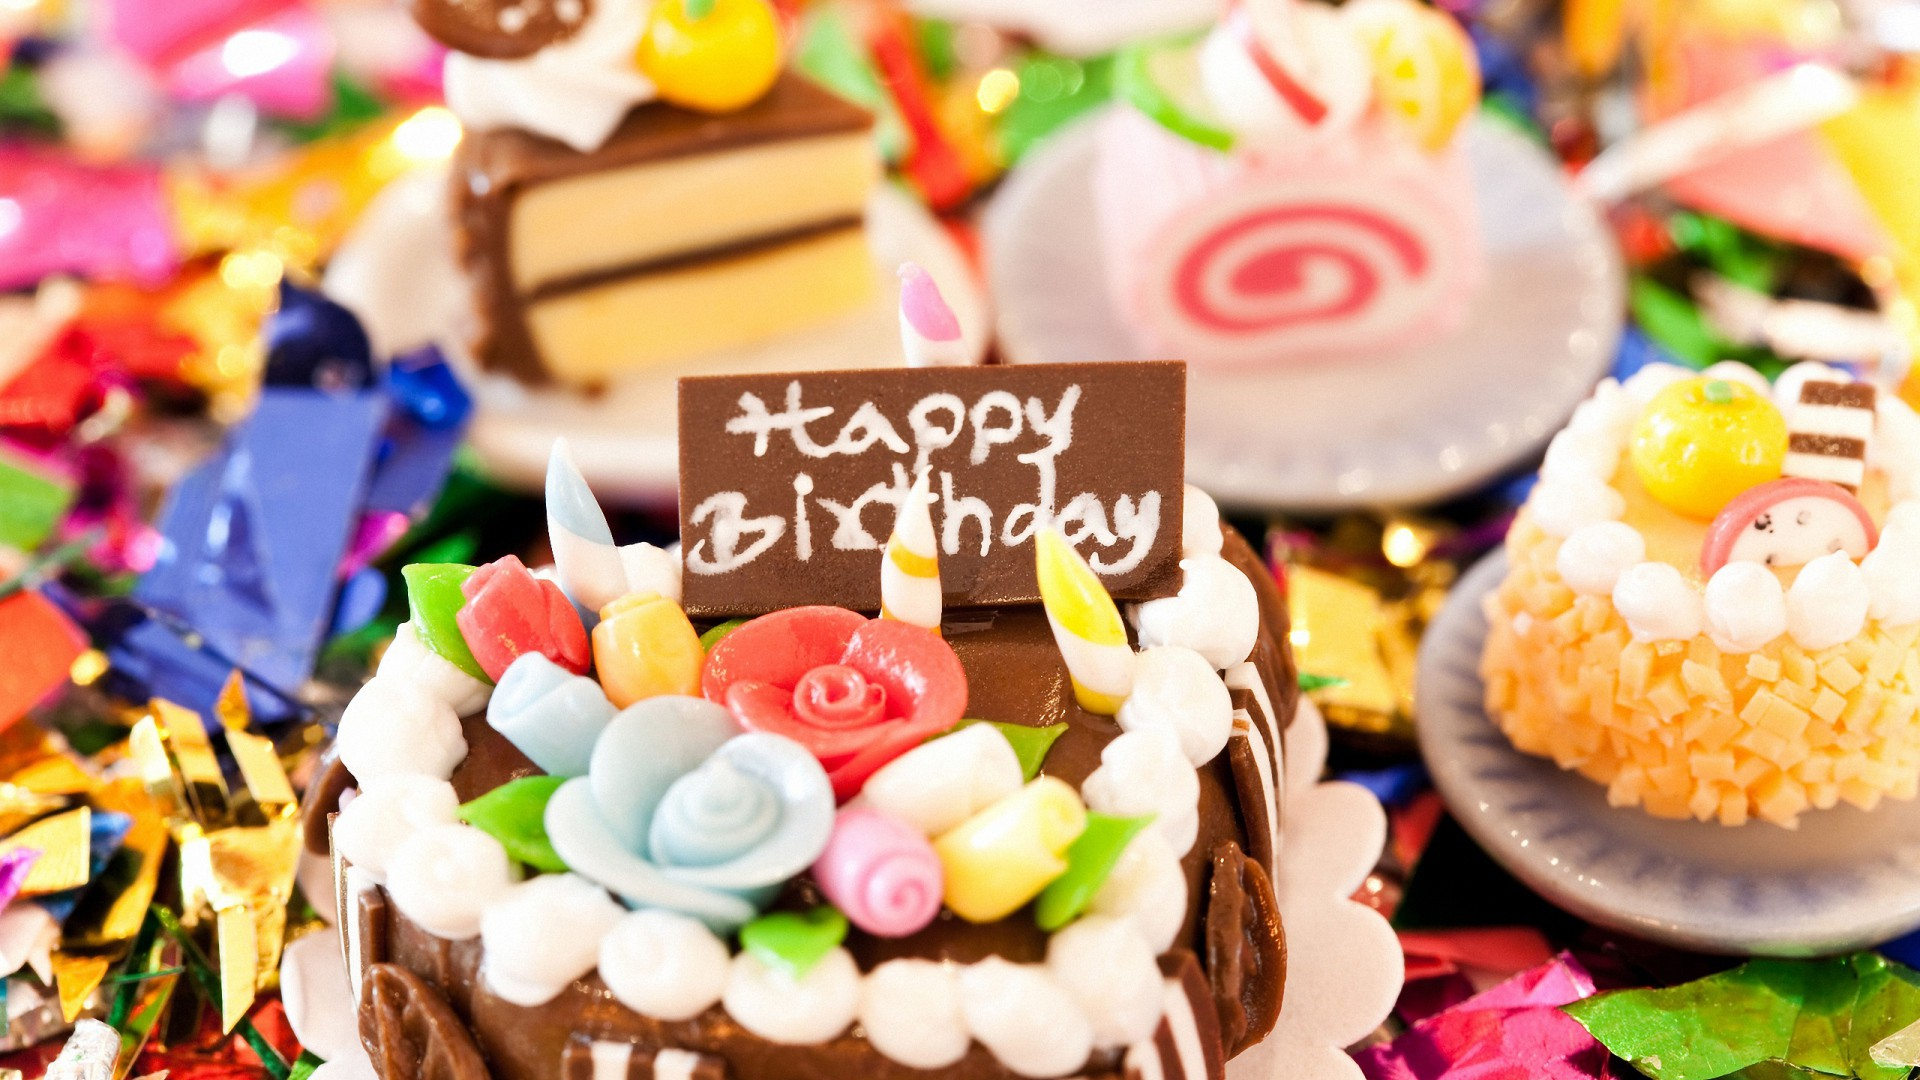 happy birthday images hd 1080p ; full-hd-wallpapers-1080p-2s-7d3fr-1920x1080